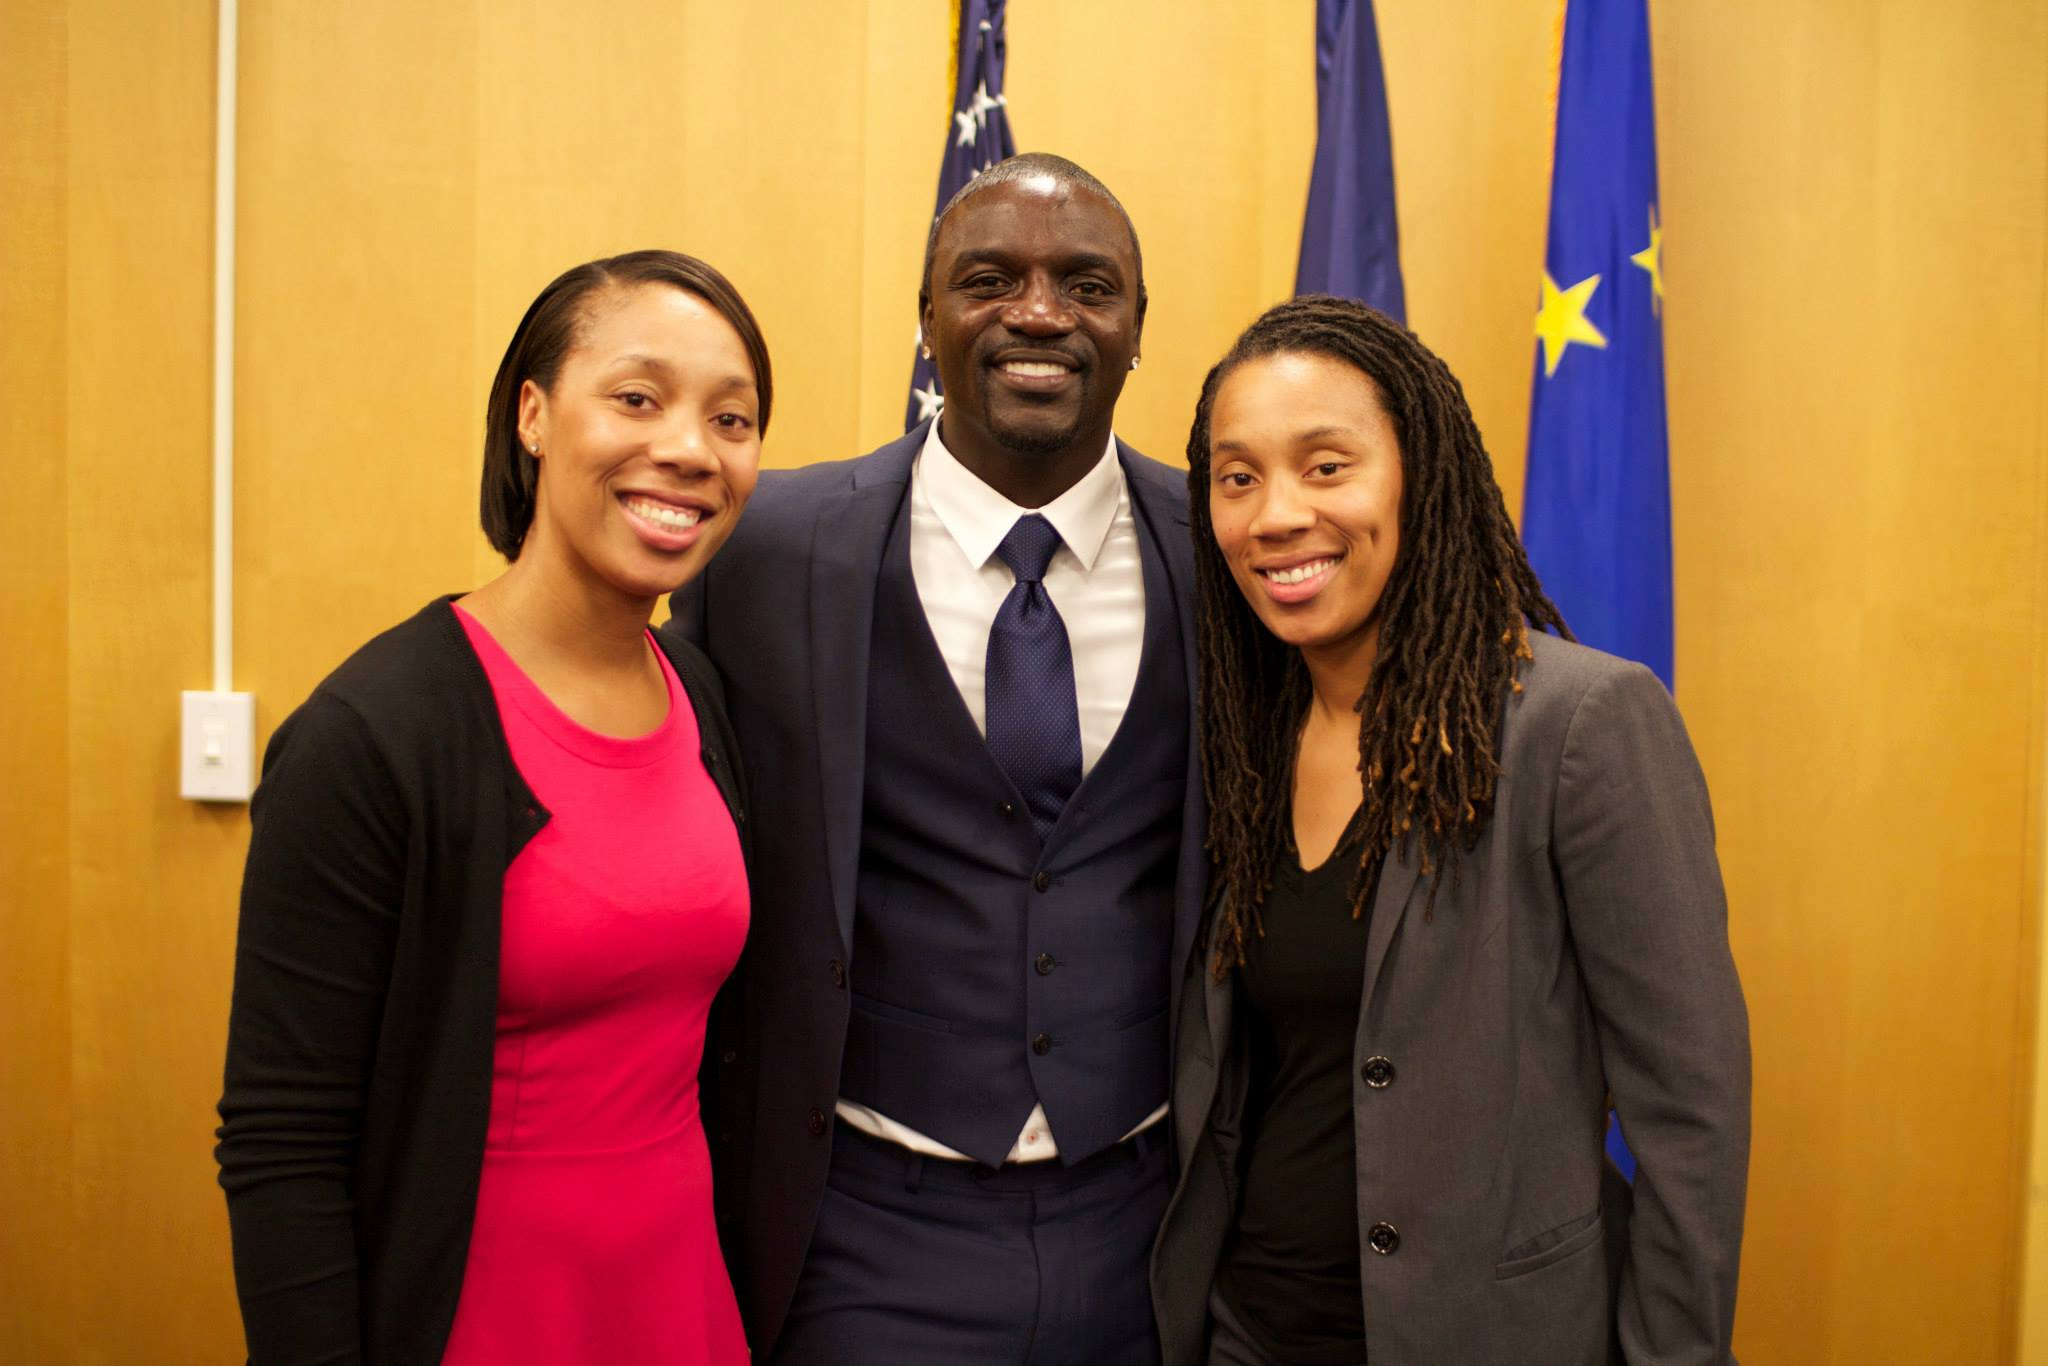 Tina and Trina with Akon